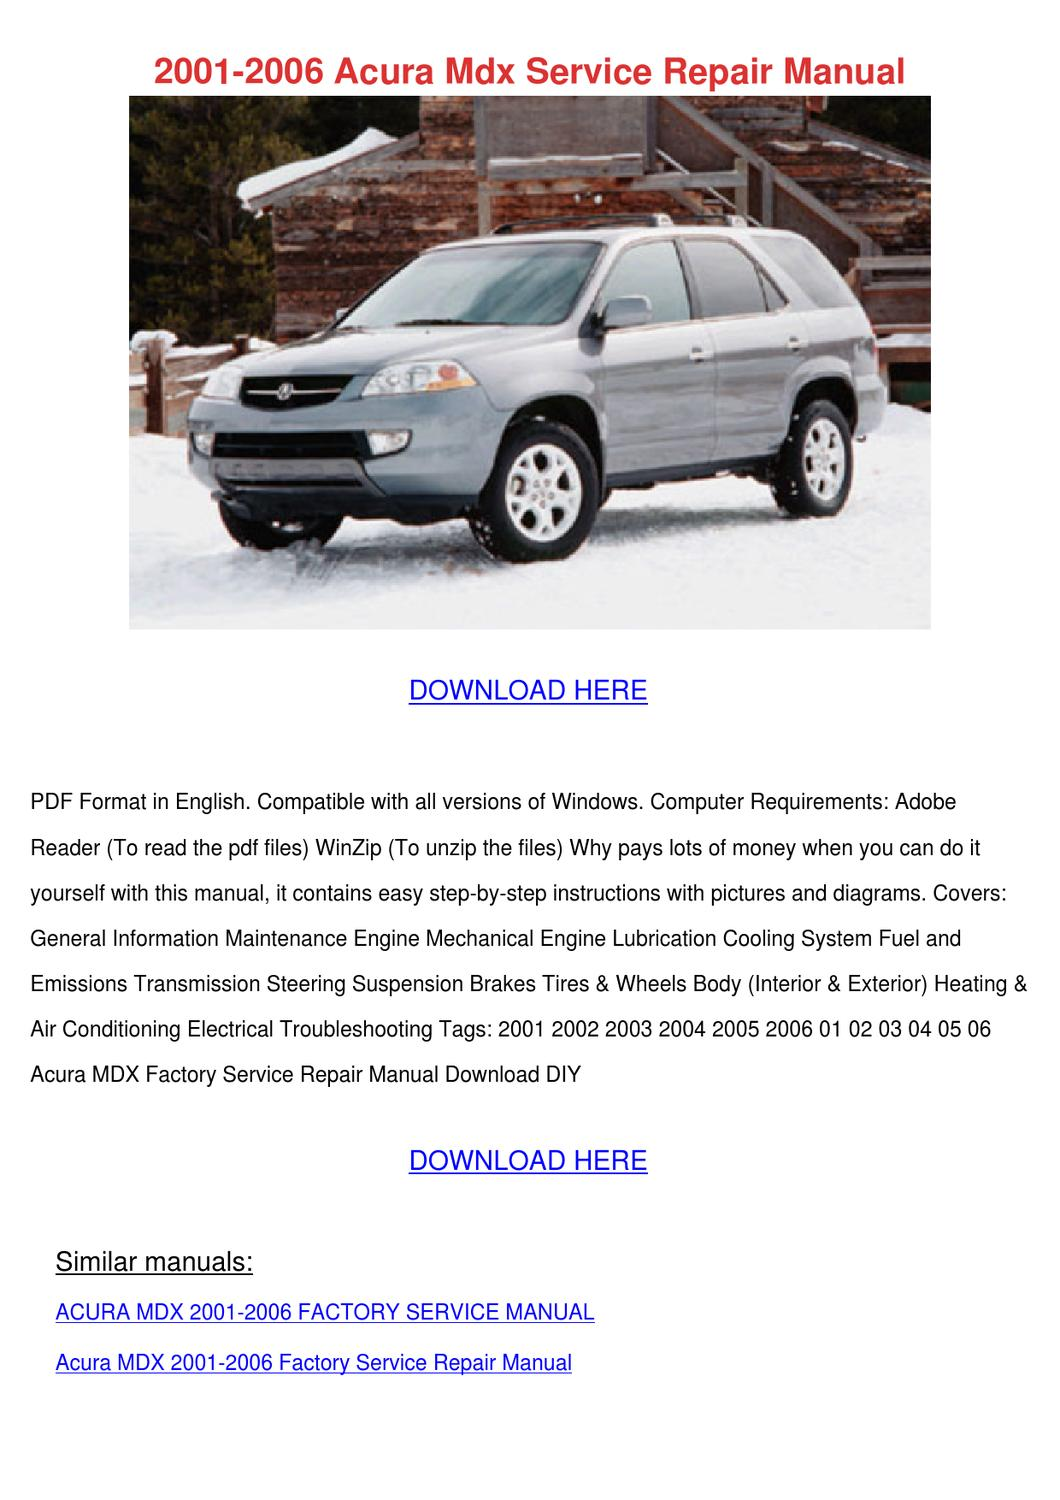 2001 2006 acura mdx service repair manual by feliciadailey issuu rh issuu com acura mdx 2003 repair manual download acura mdx 2003 owners manual